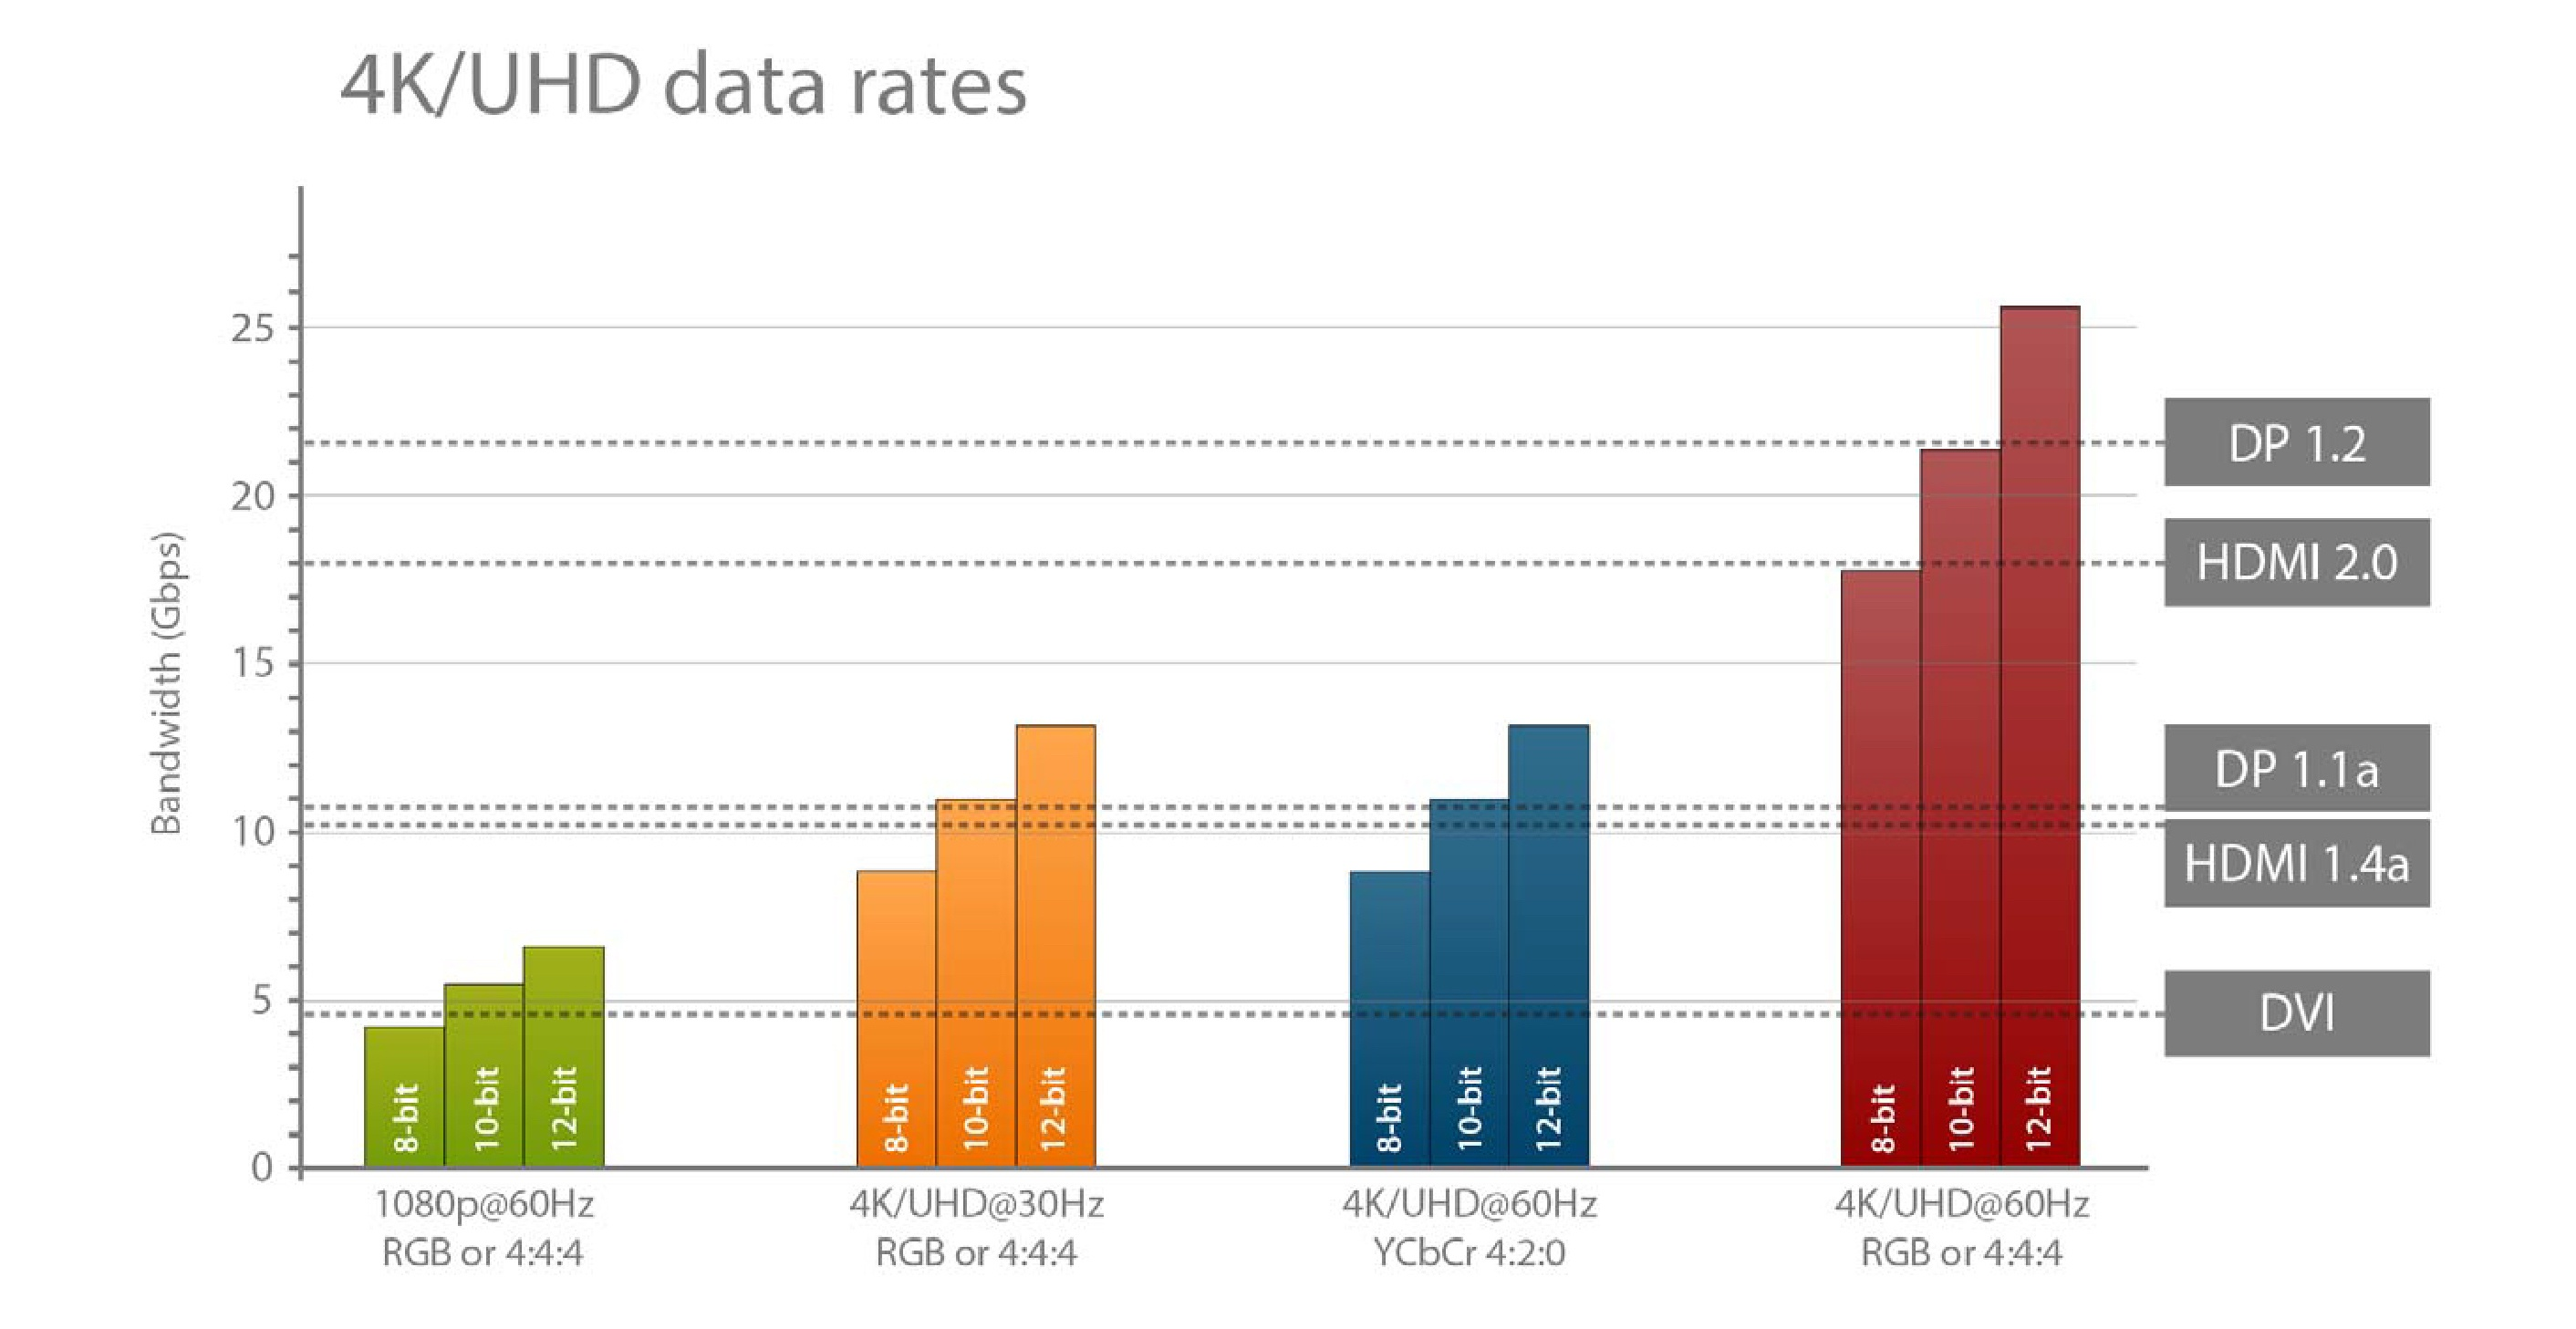 4K /UHD data rates